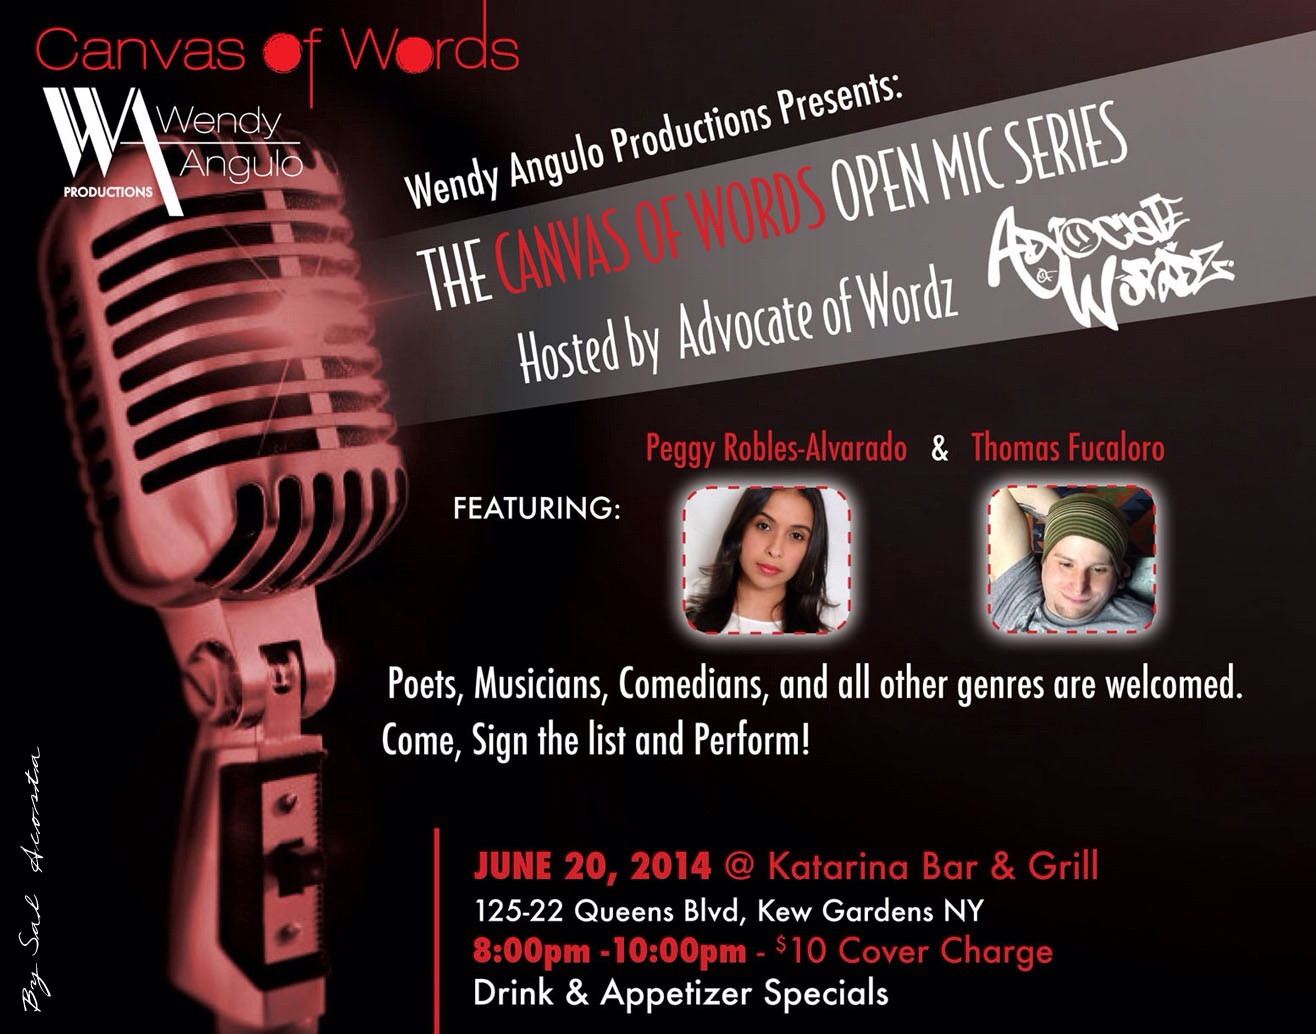 'Canvas of Words' Open Mic Series Aims to Foster Community For Queens Artists